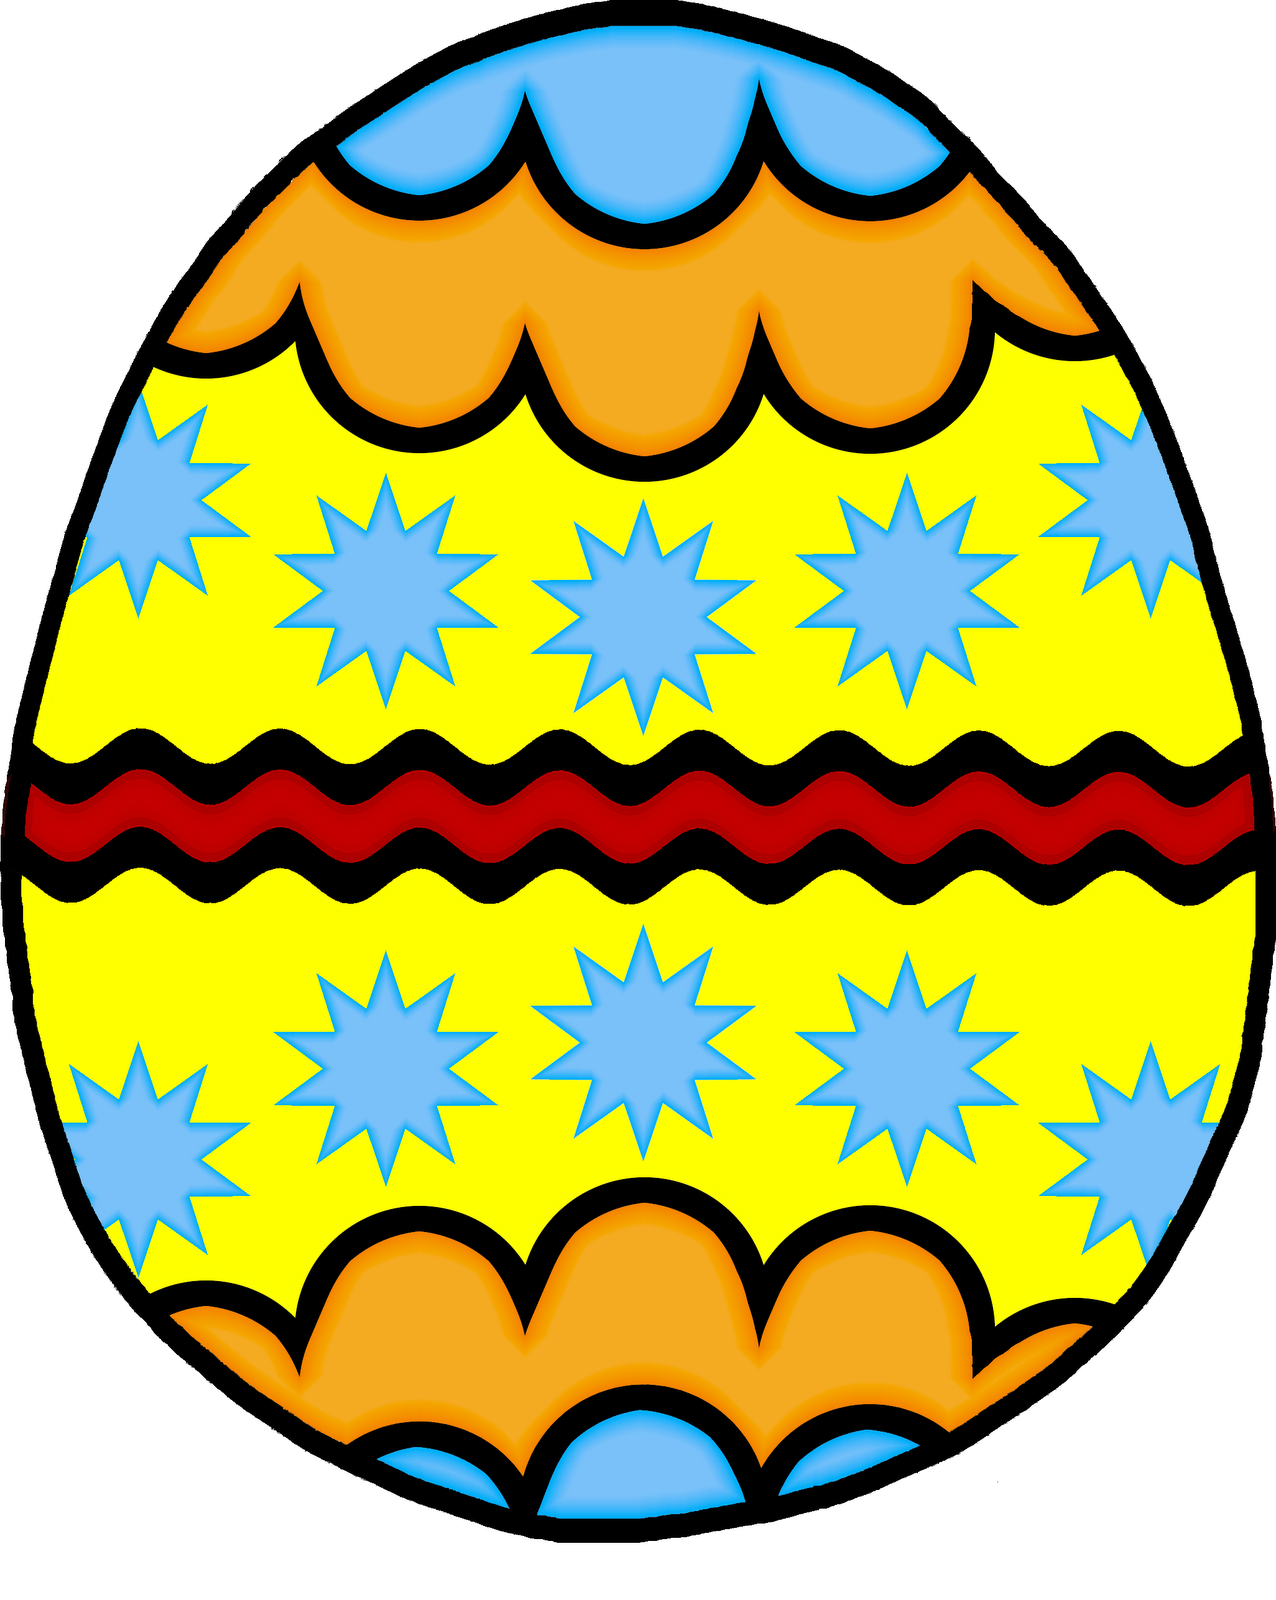 1276x1600 Free Egg Easter Egg Free To Use Clip Art